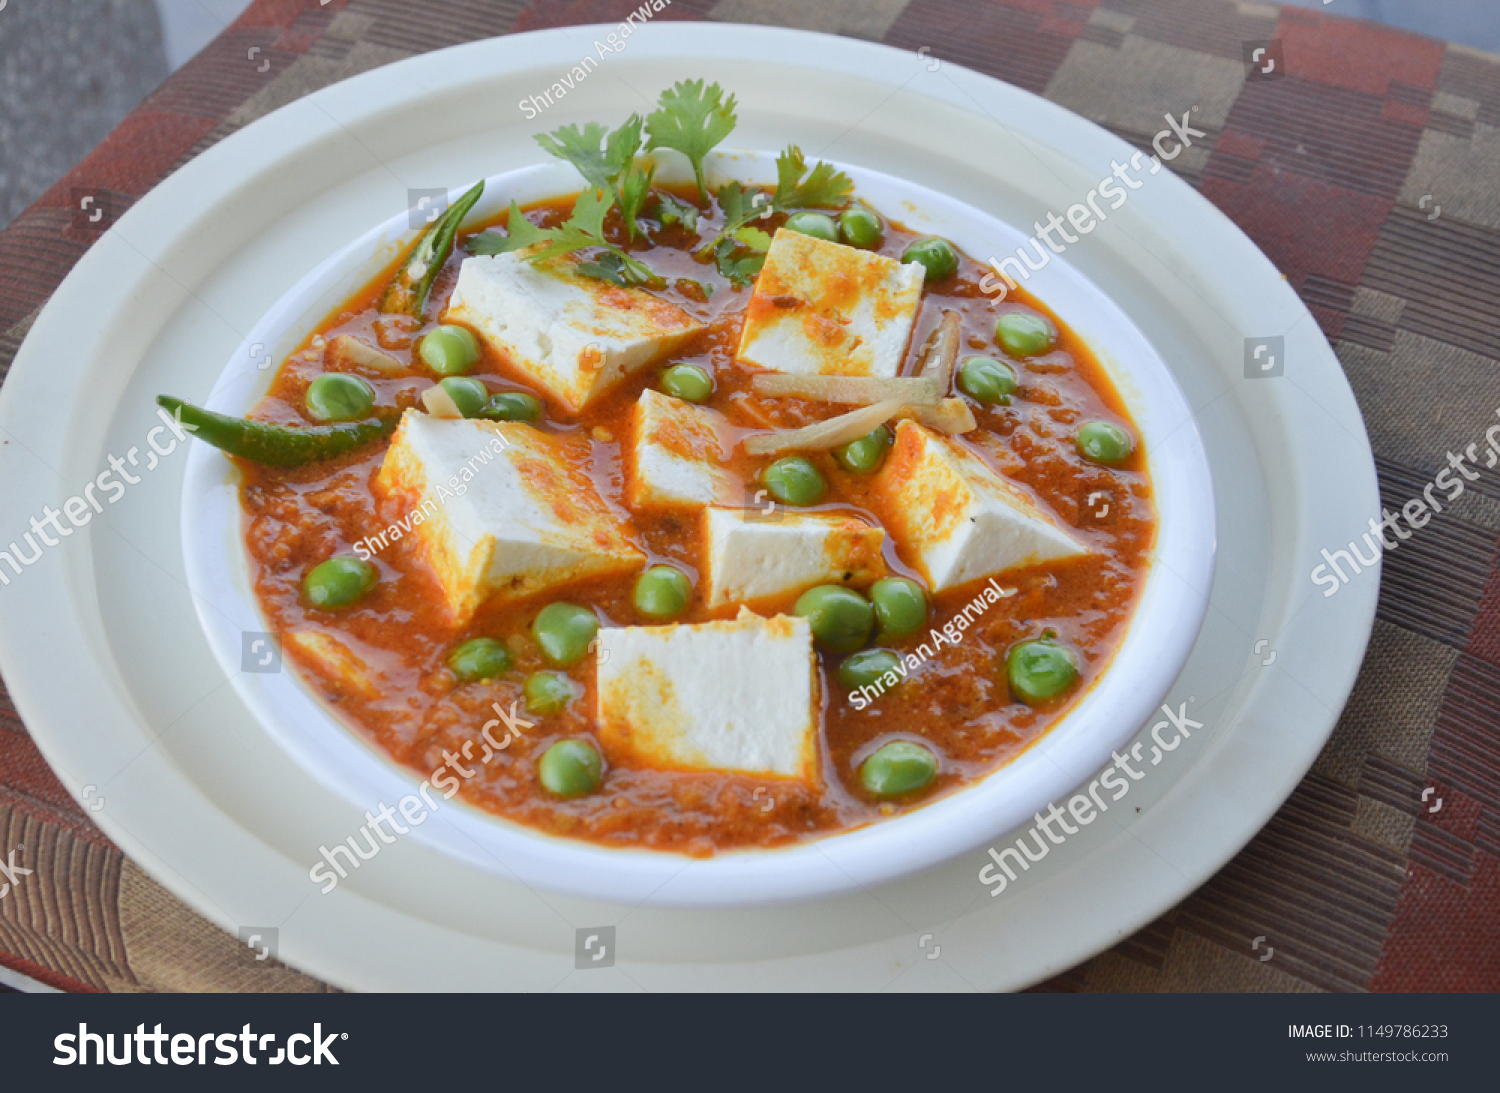 cheese, vegetable dish,cheese and peas #1149786233